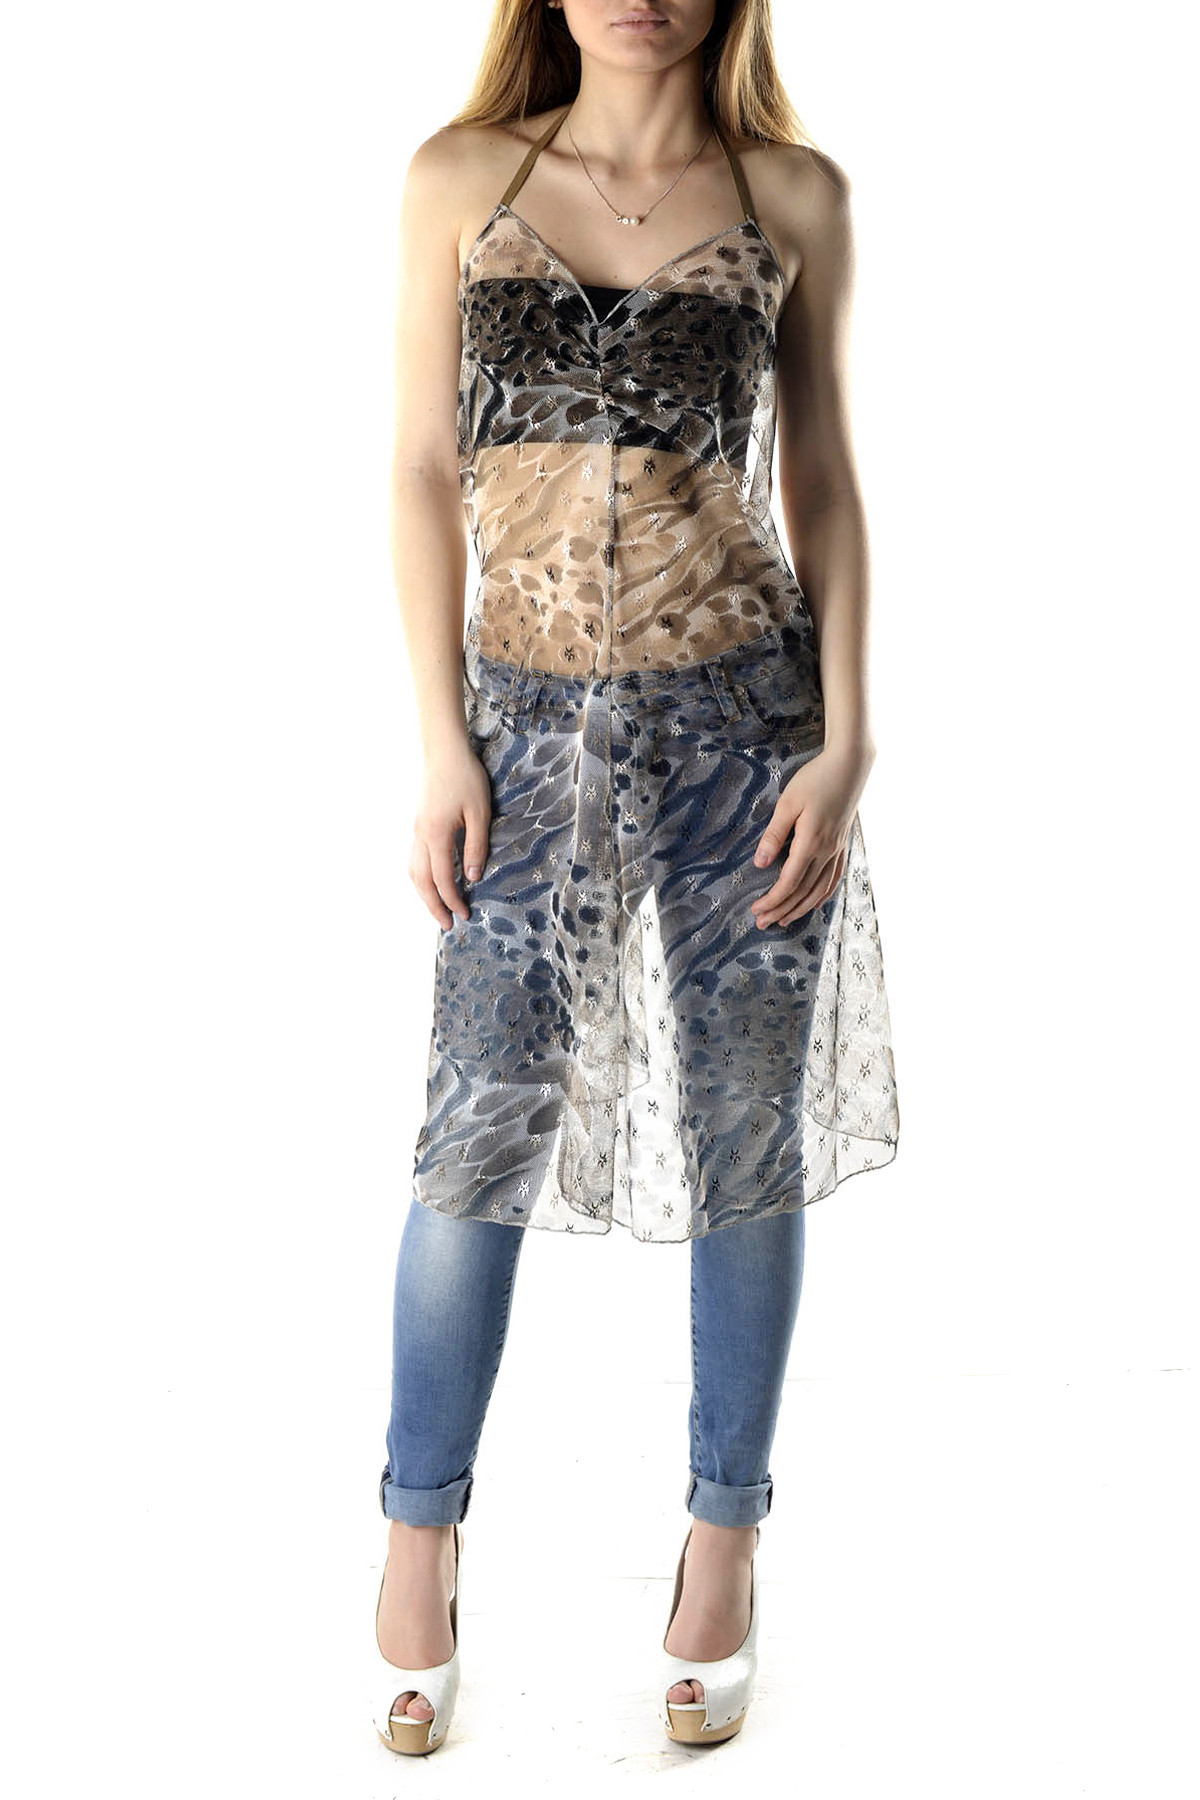 525Marchio: 525; Genere: Donna; Tipologia: Blouse;